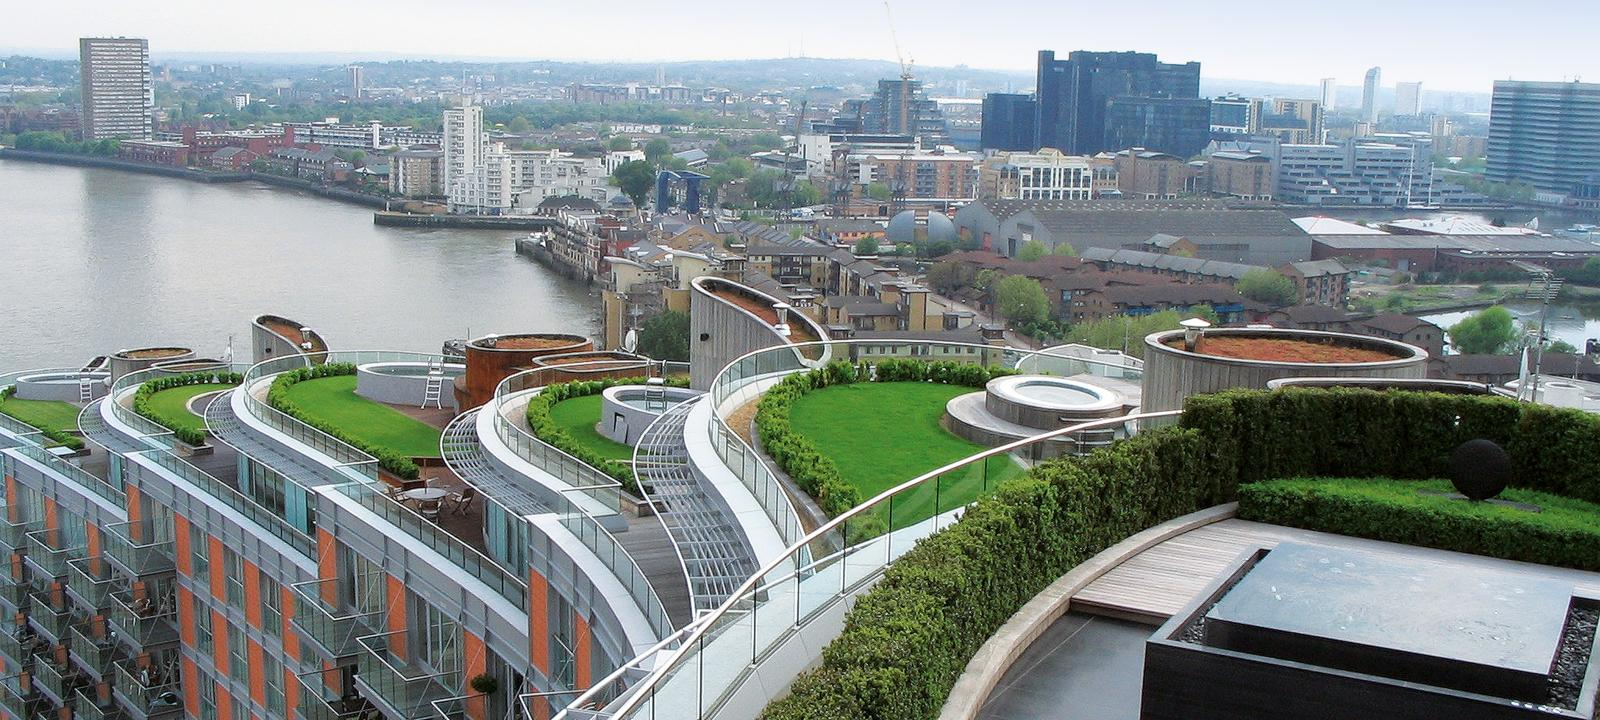 Roof Gardens History Design And Construction Pdf New Providence Wharf, London | Zinco Green Roof Systems